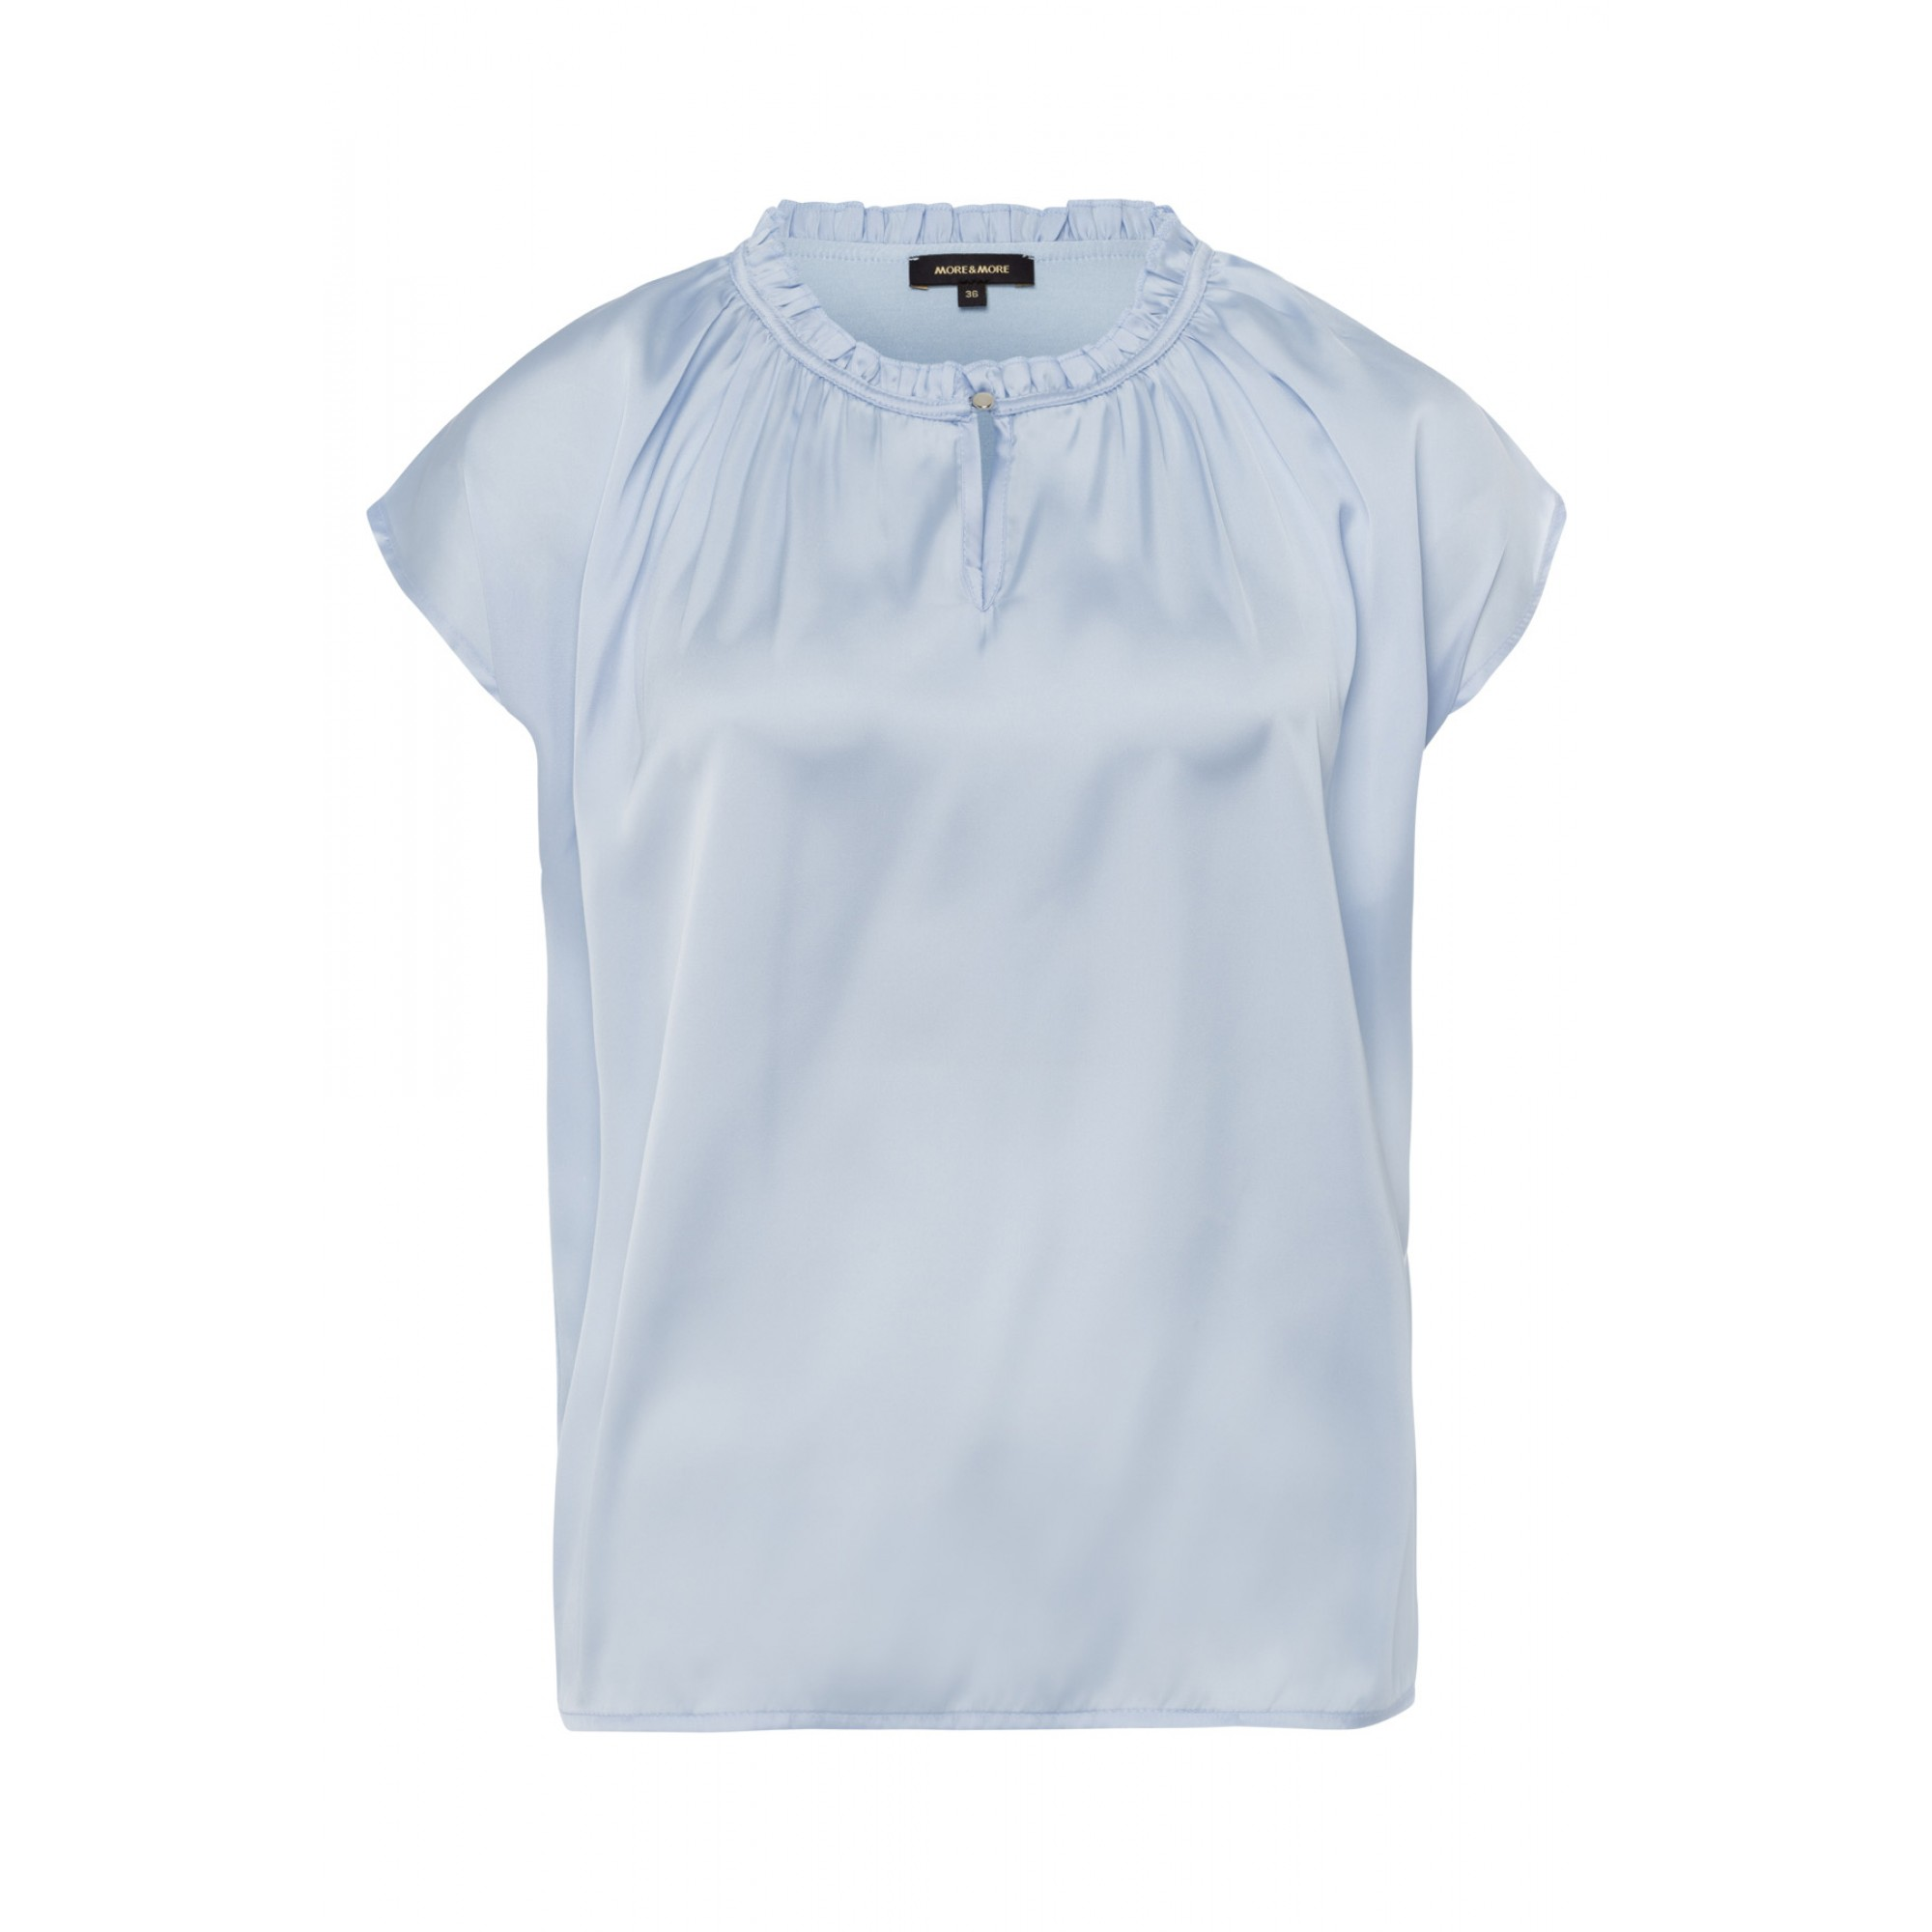 Blusenshirt, soft blue 11030014-0305 1